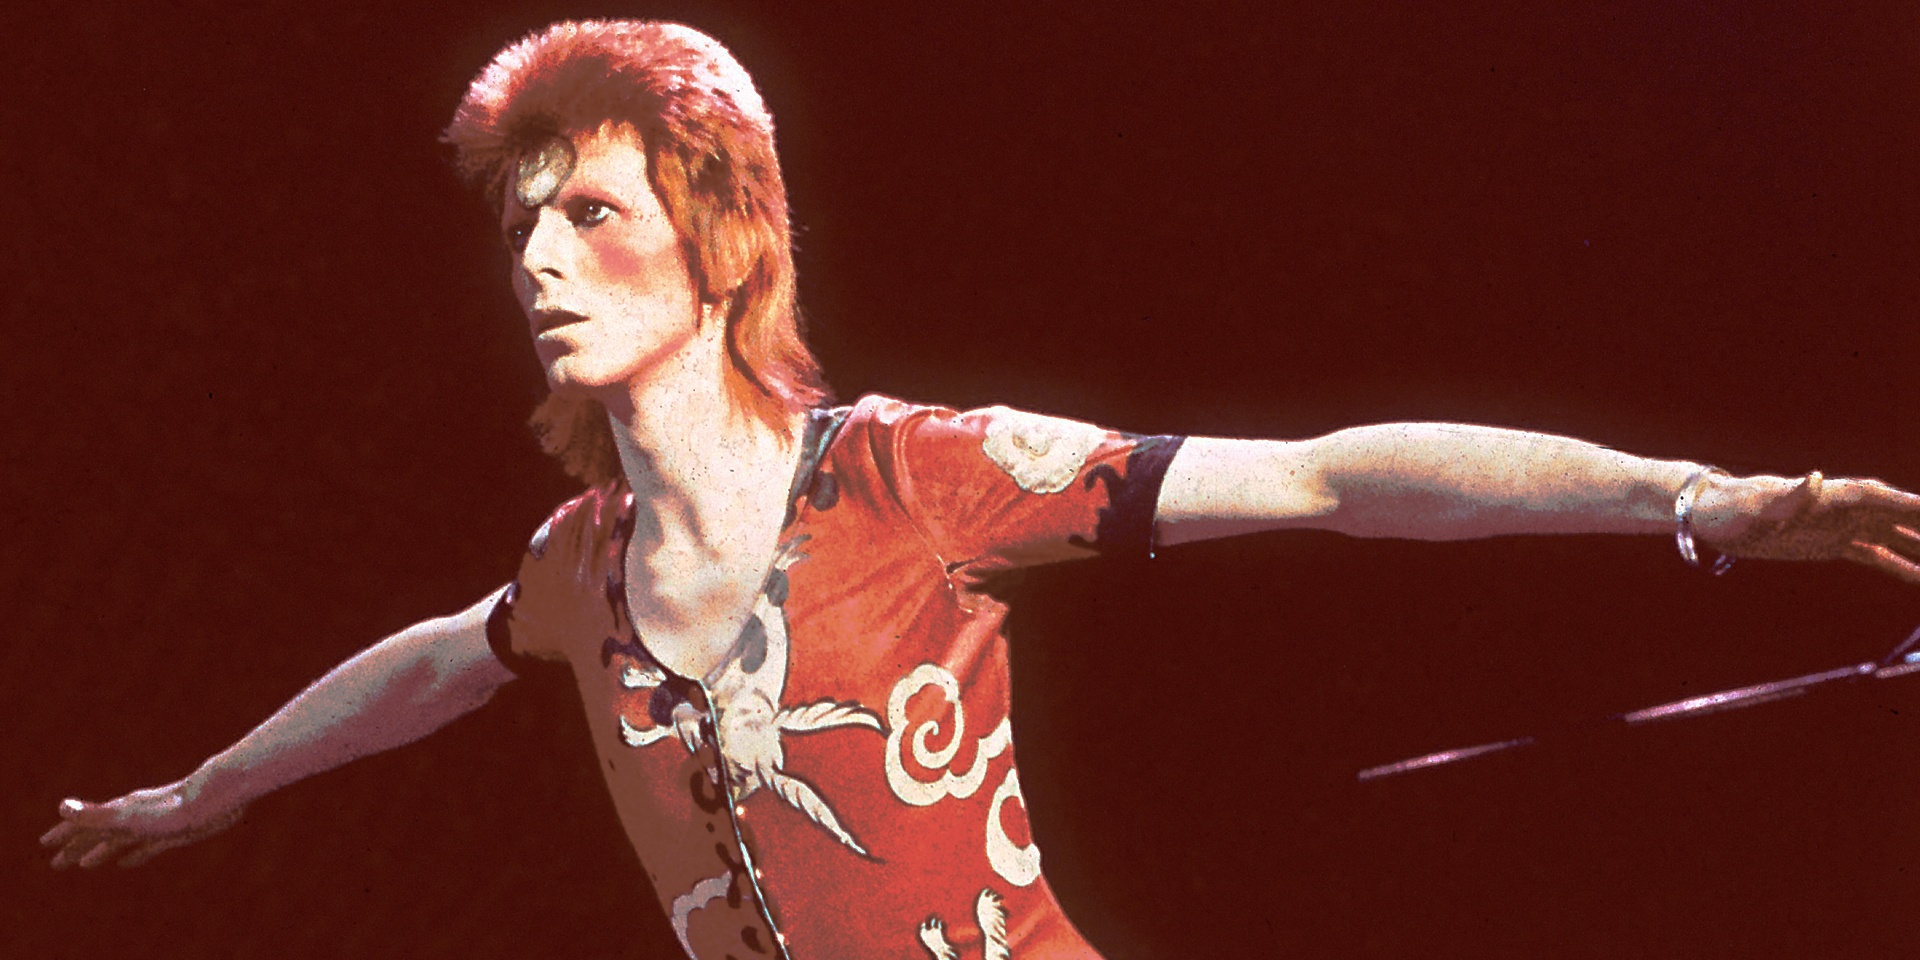 Essentials: David Bowie's The Rise and Fall of Ziggy Stardust and the Spiders from Mars (1972)